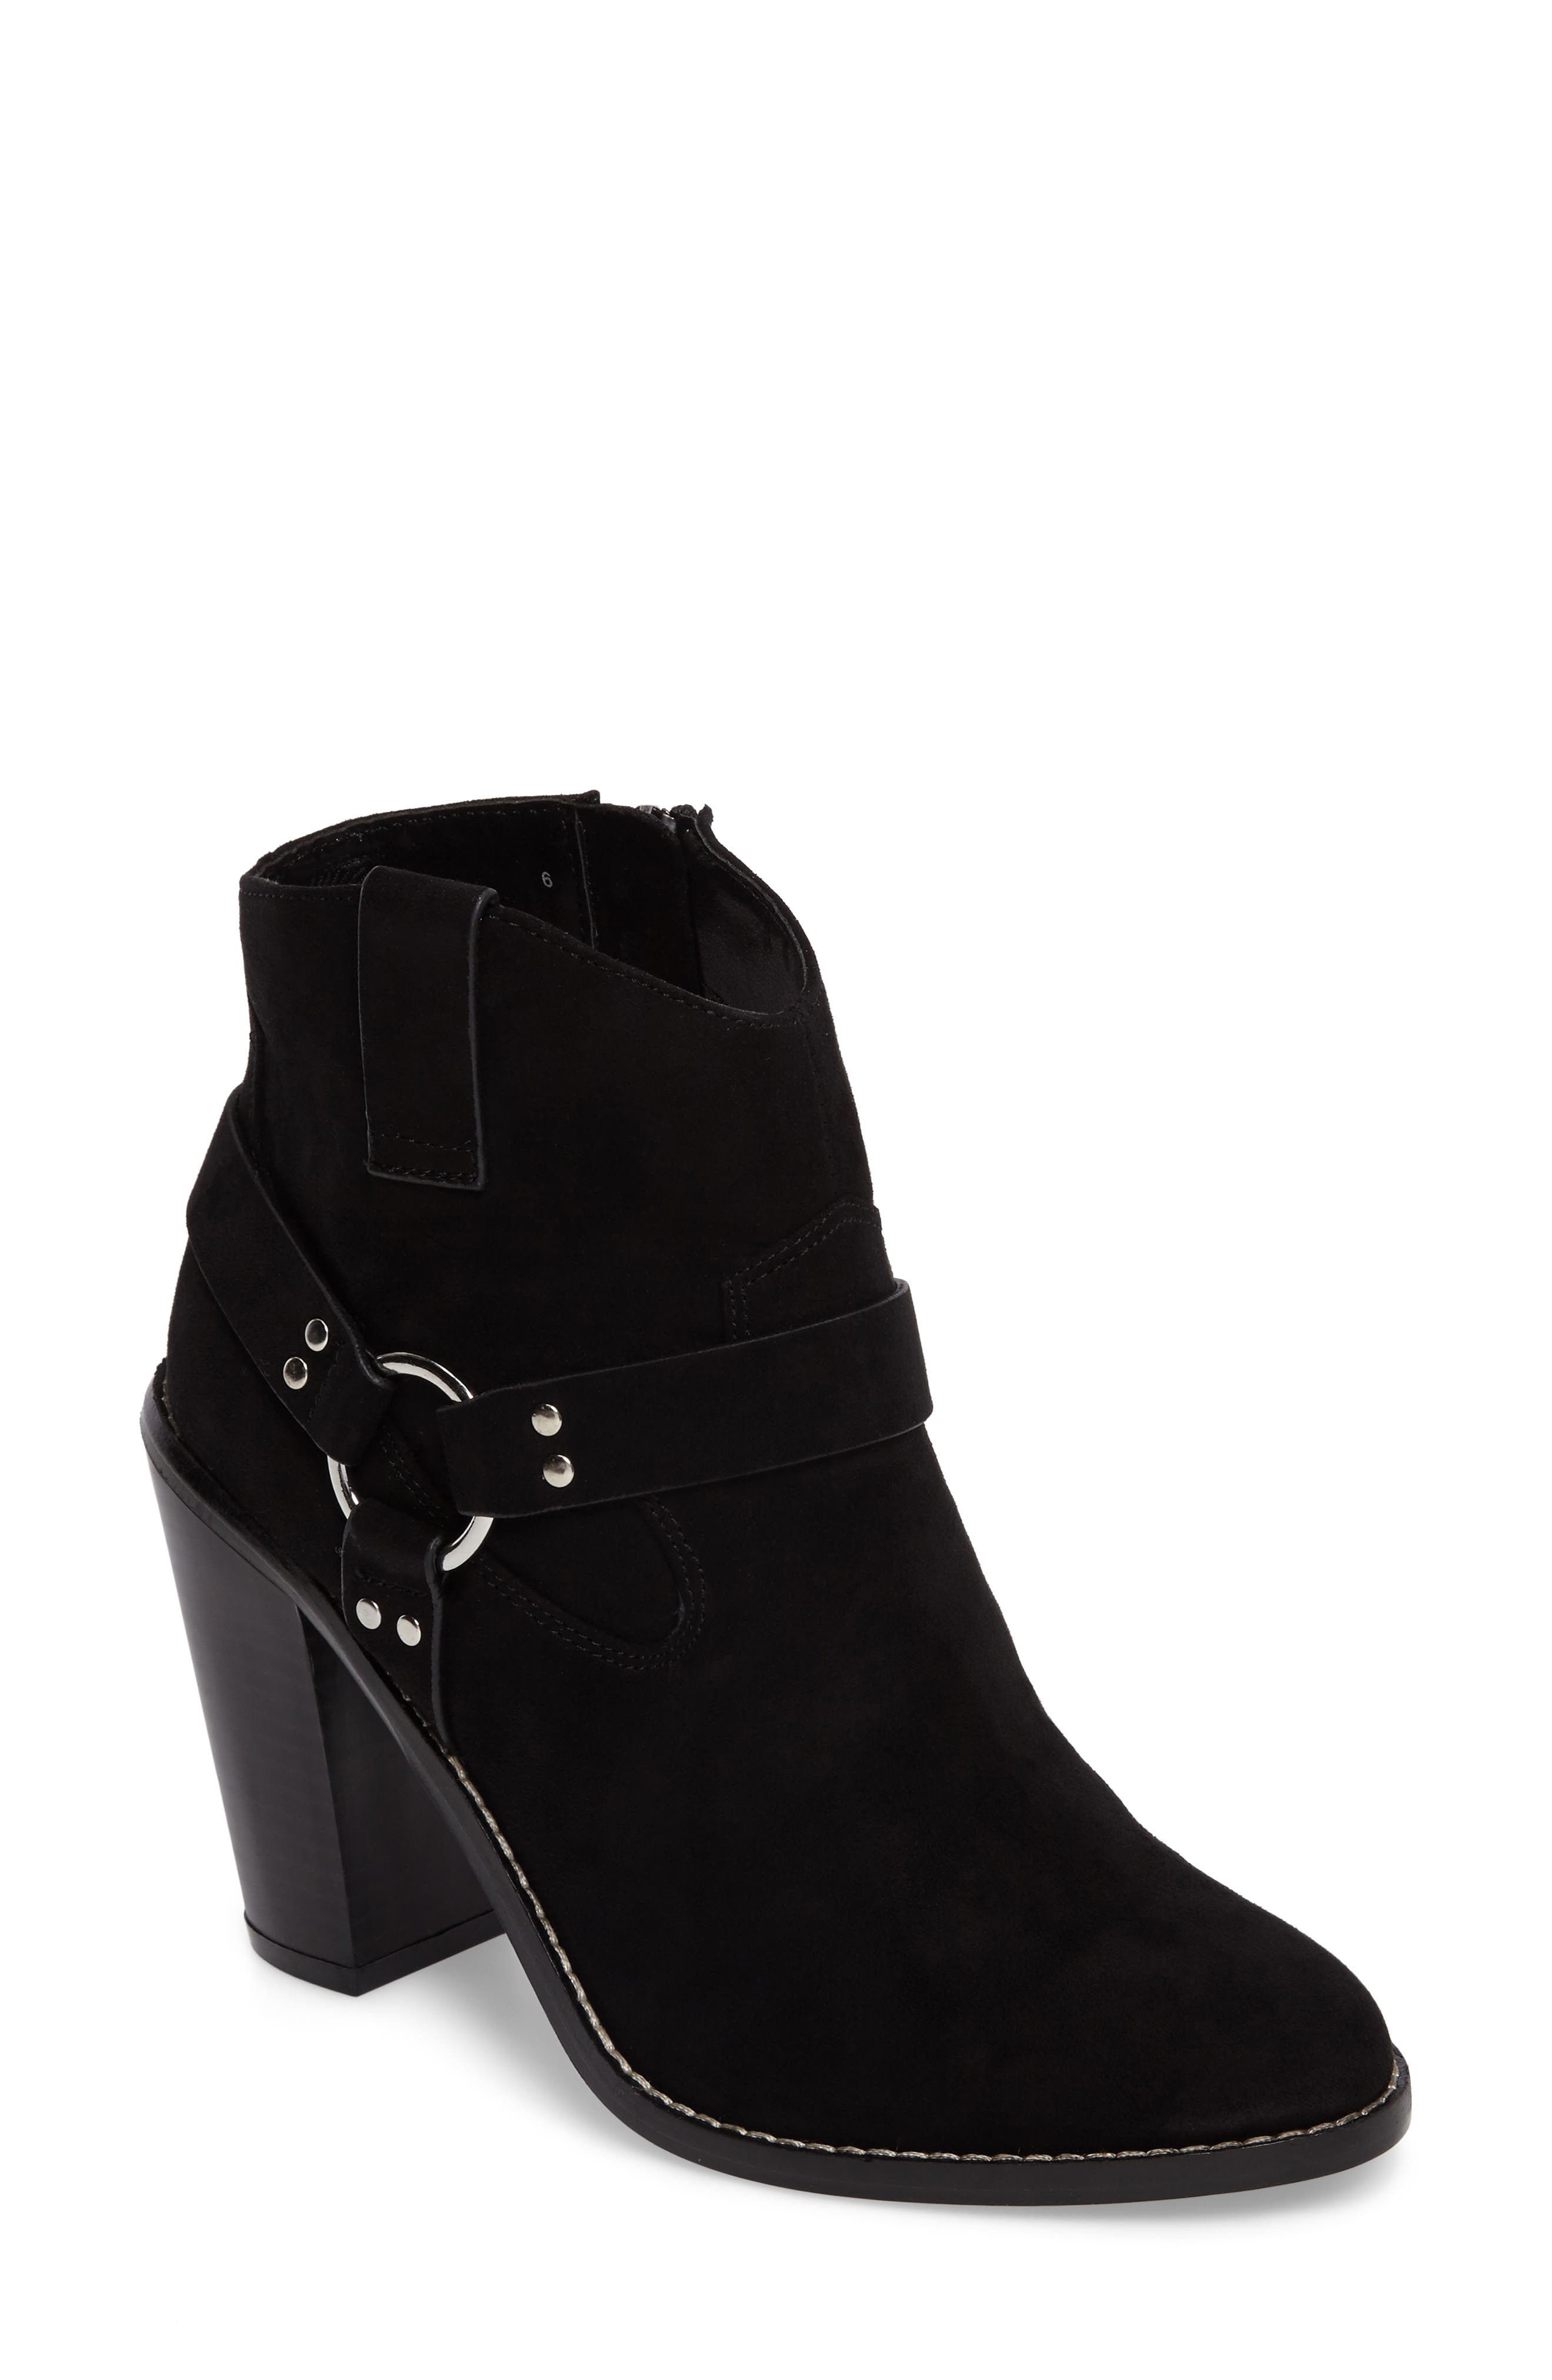 Fancye Ringed Ankle Strap Bootie,                         Main,                         color, BLACK SYNTHETIC